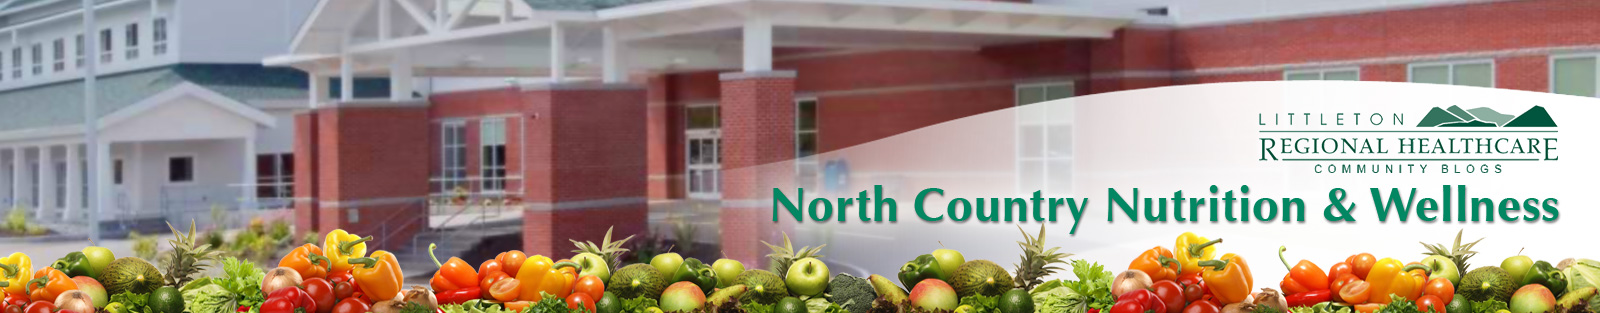 North Country Nutrition and Wellness